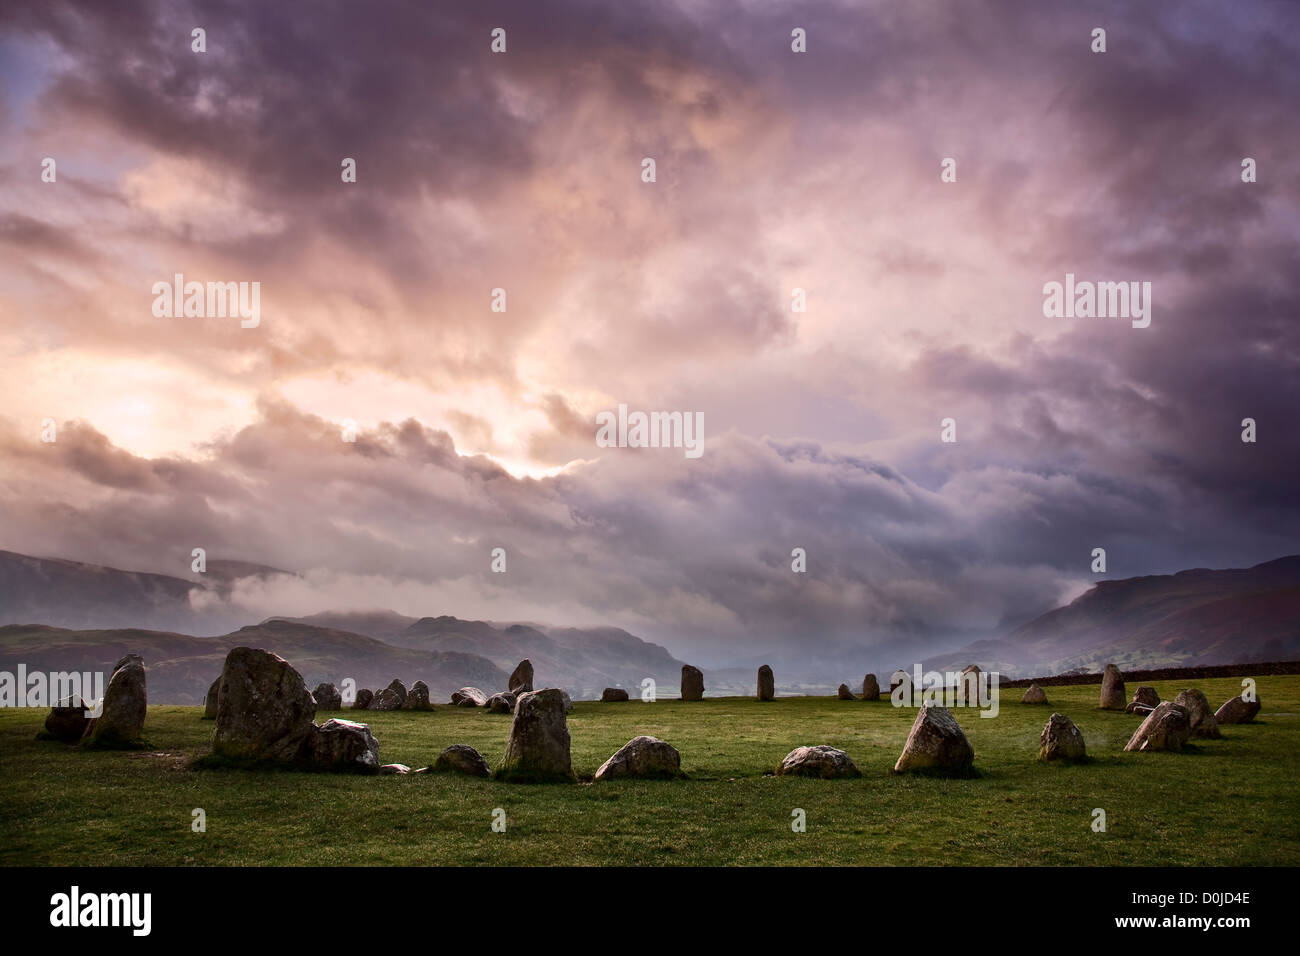 Castlerigg Stone Circle in the Lake District National Park. - Stock Image